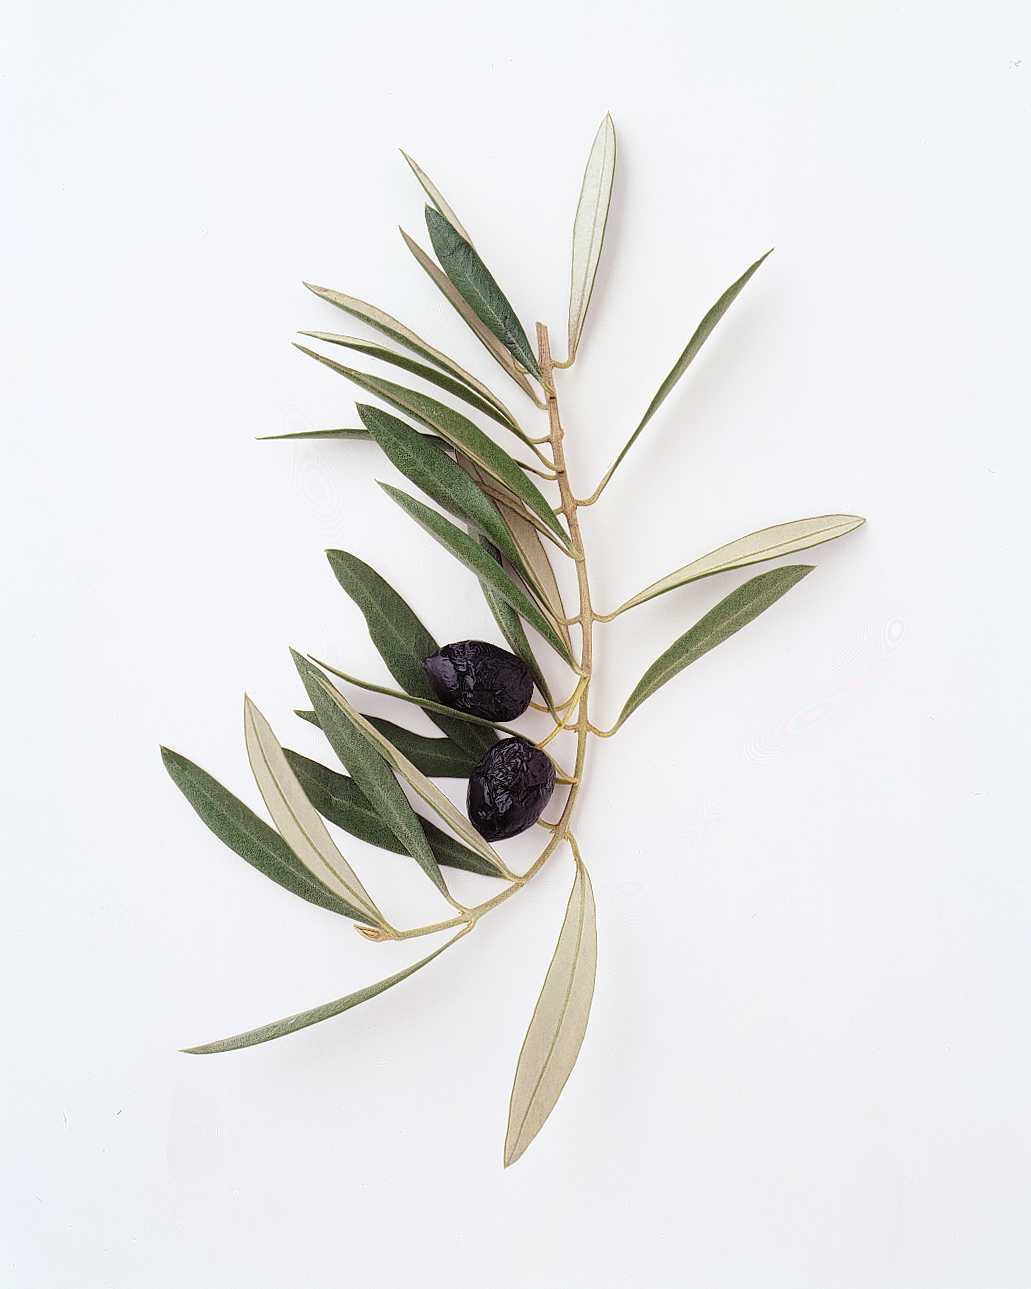 flower-glossary-olive-a98432-0415.jpg